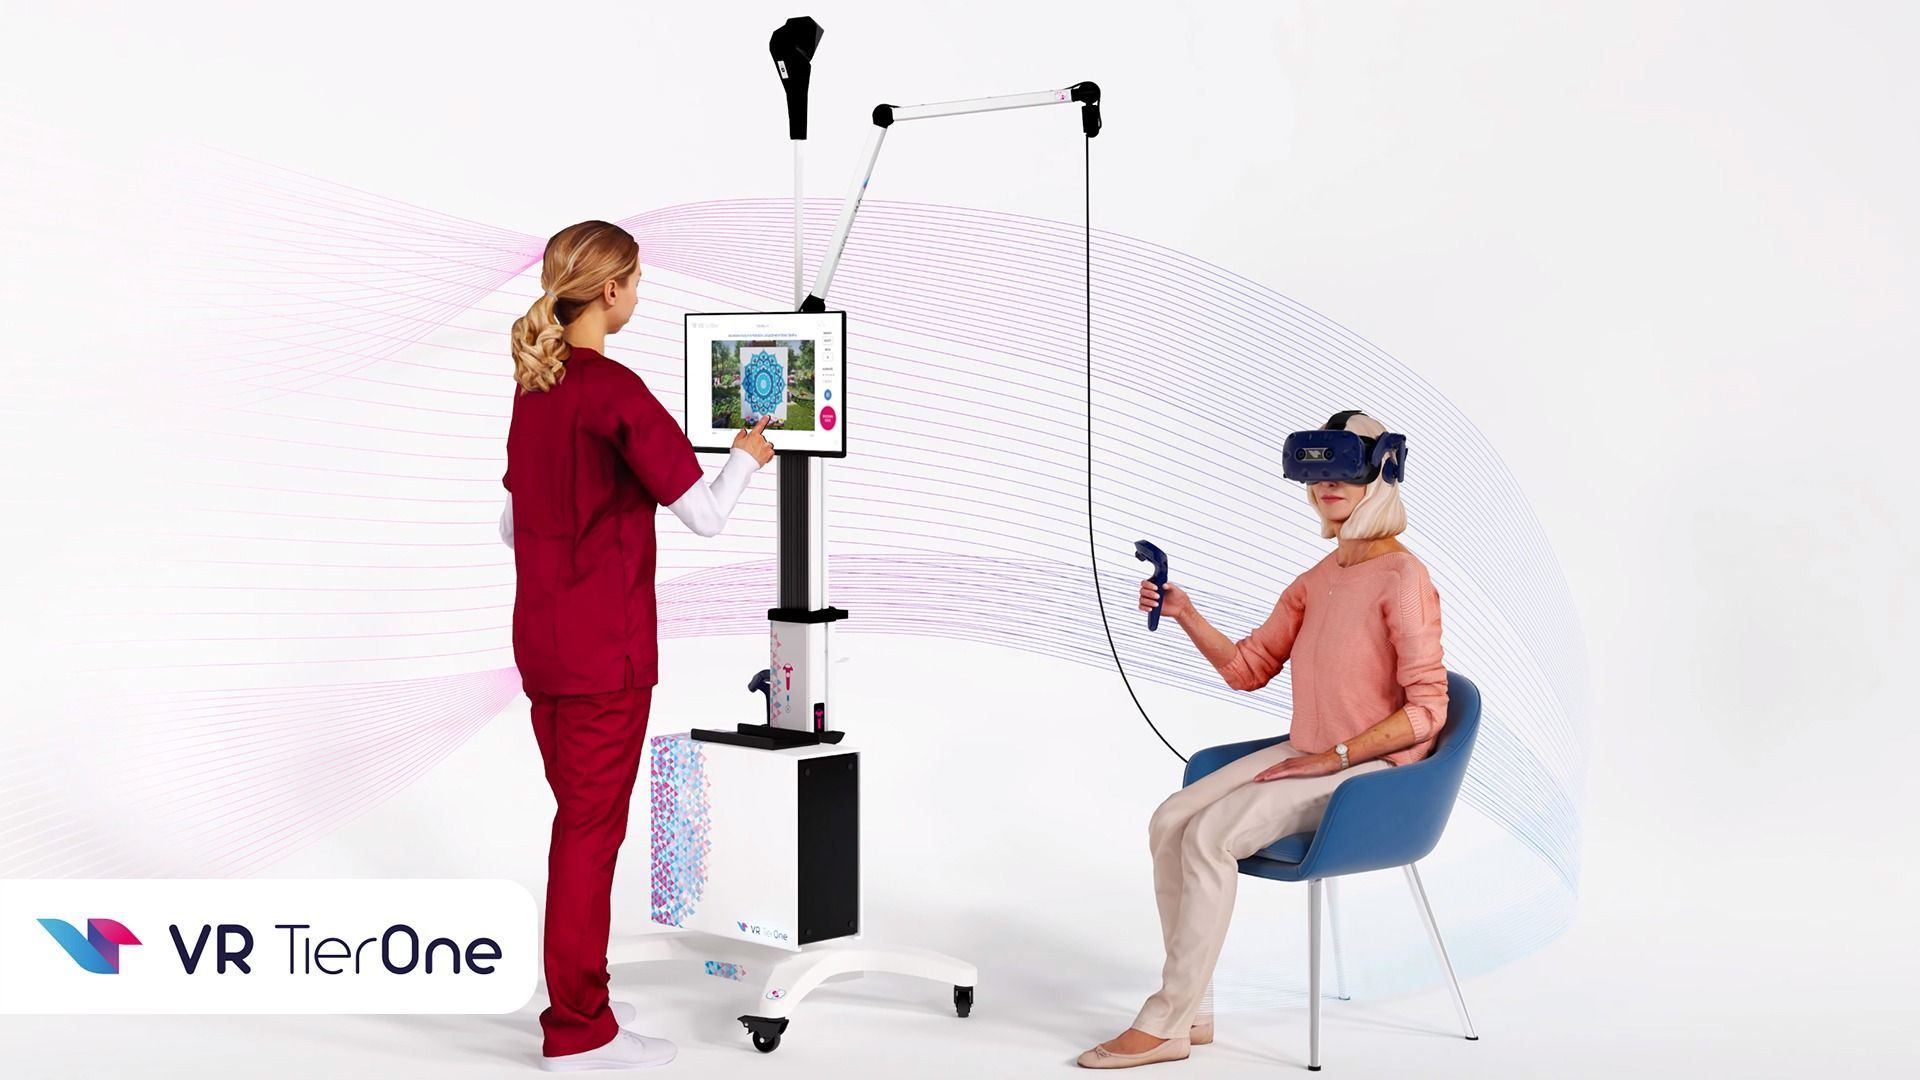 VR TierOne in the eyes of the patient and medical staff